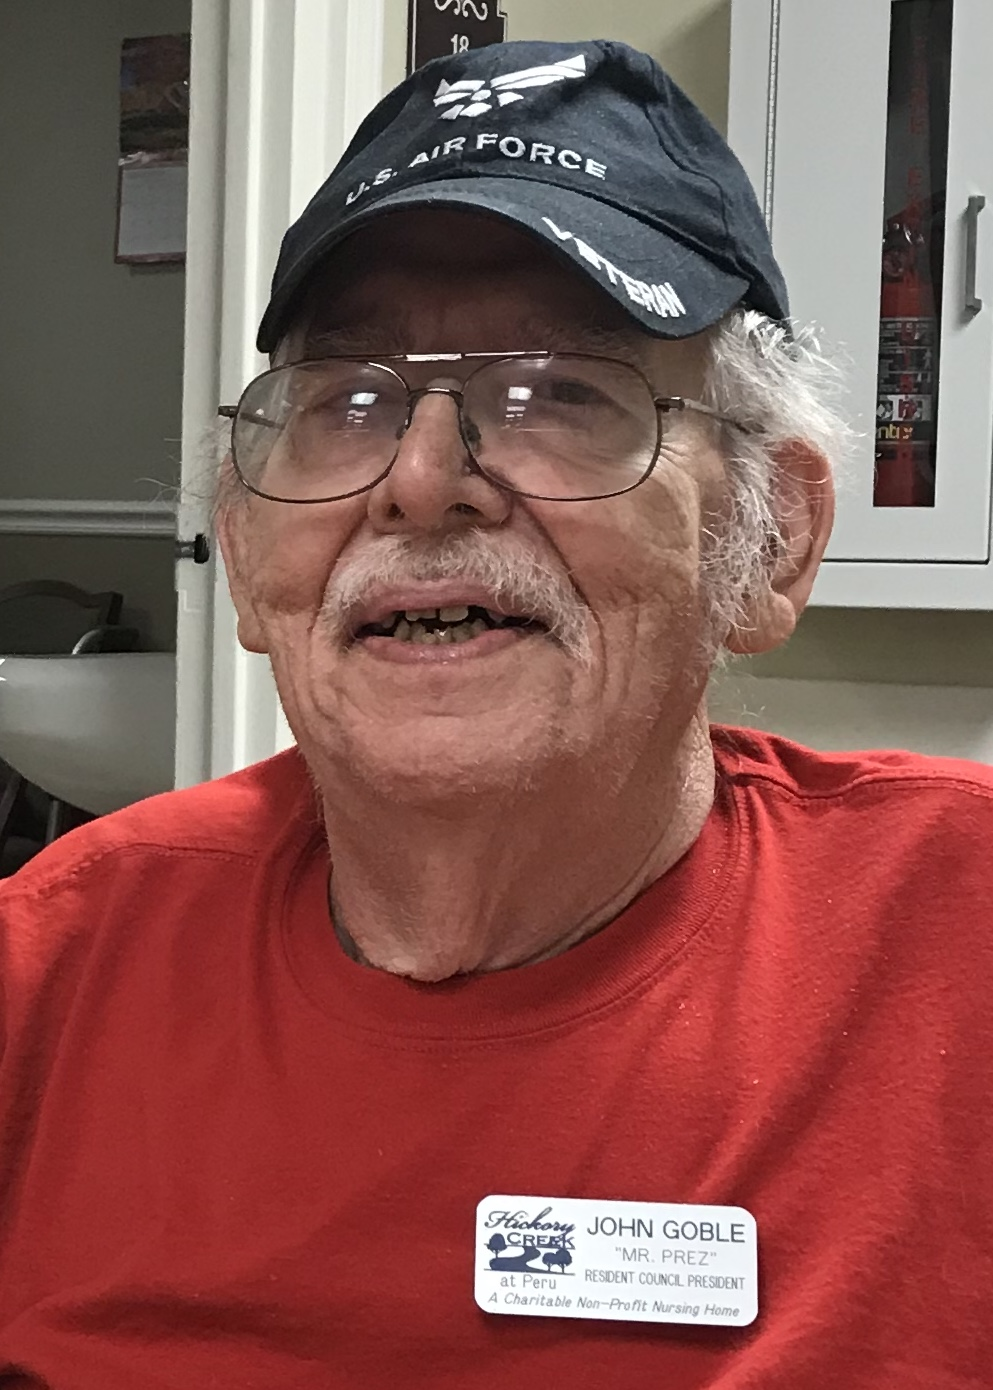 Your news local john maurice goble john maurice goble 77 of denver indiana passed away on may 11 2018 at hickory creek nursing home he was born in peru indiana on june 6 izmirmasajfo Image collections